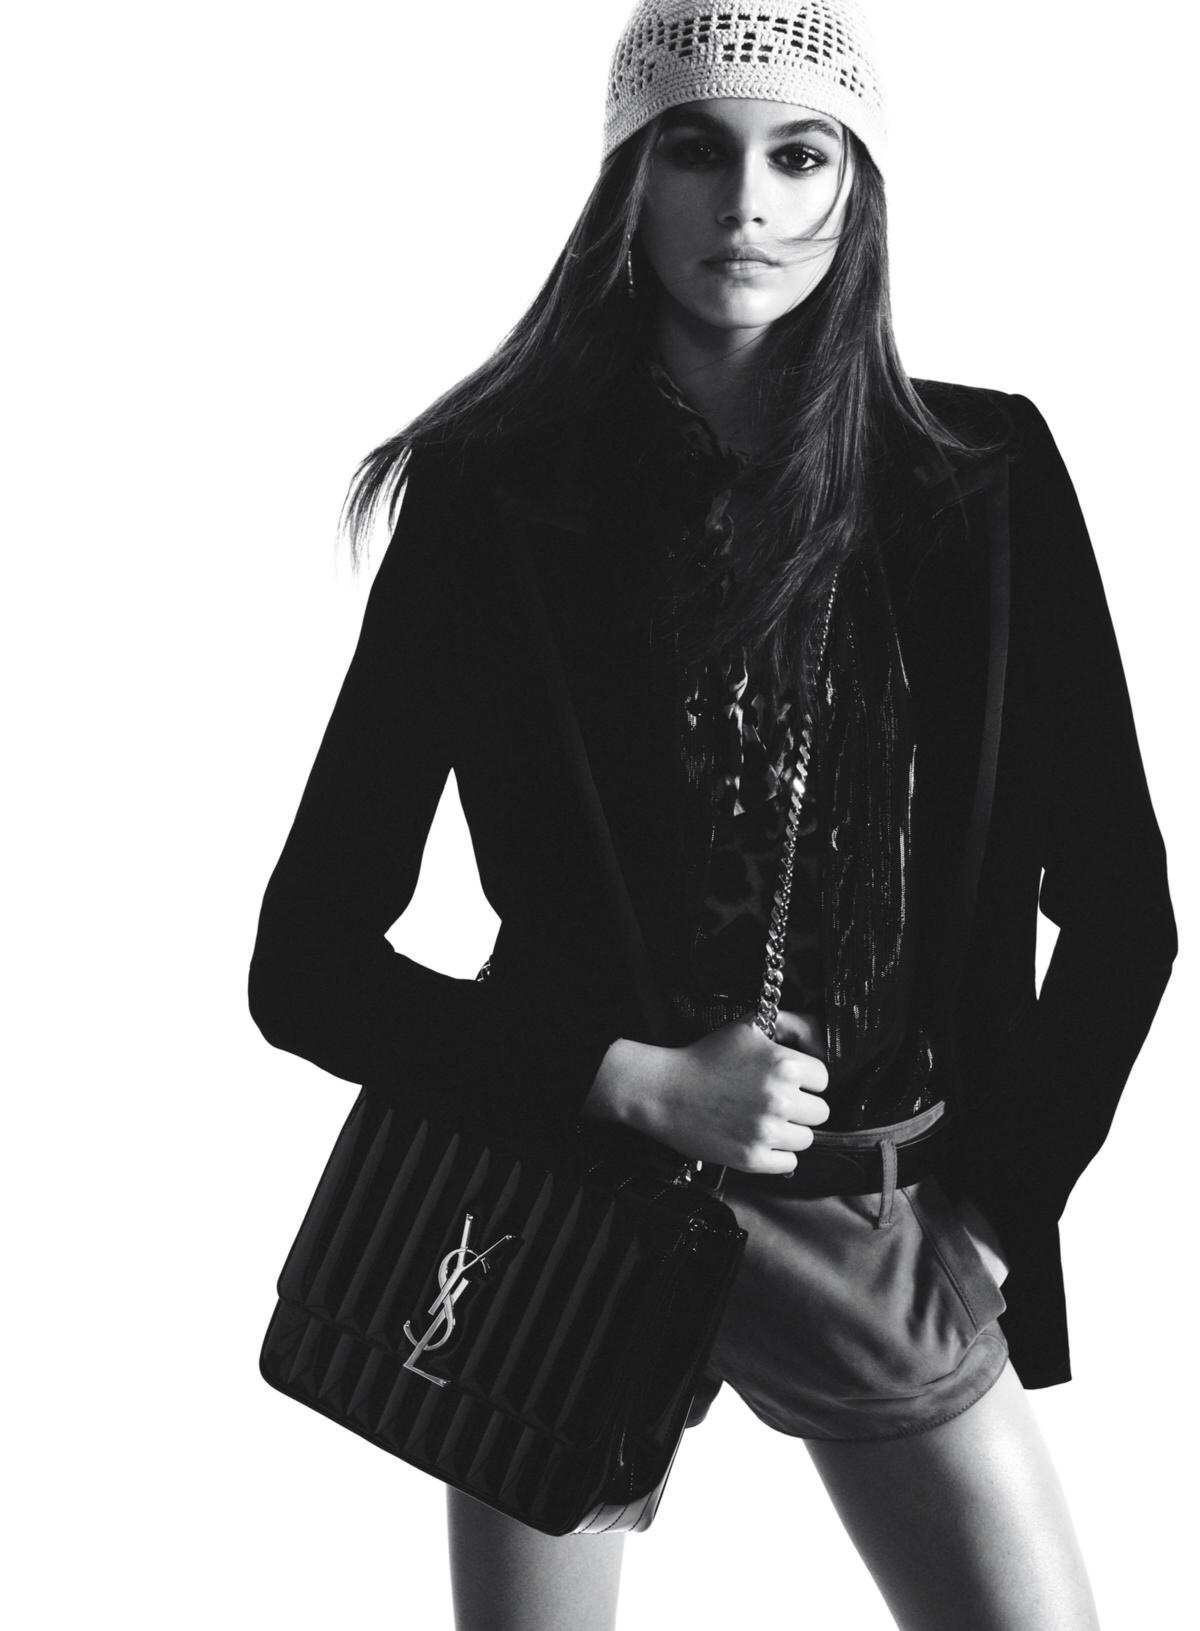 cf3bb0f3c1 YSL SAINT LAURENT Kaia Gerber stars in Saint Laurent s Fall 2018 campaign.  Photographed by David Sims